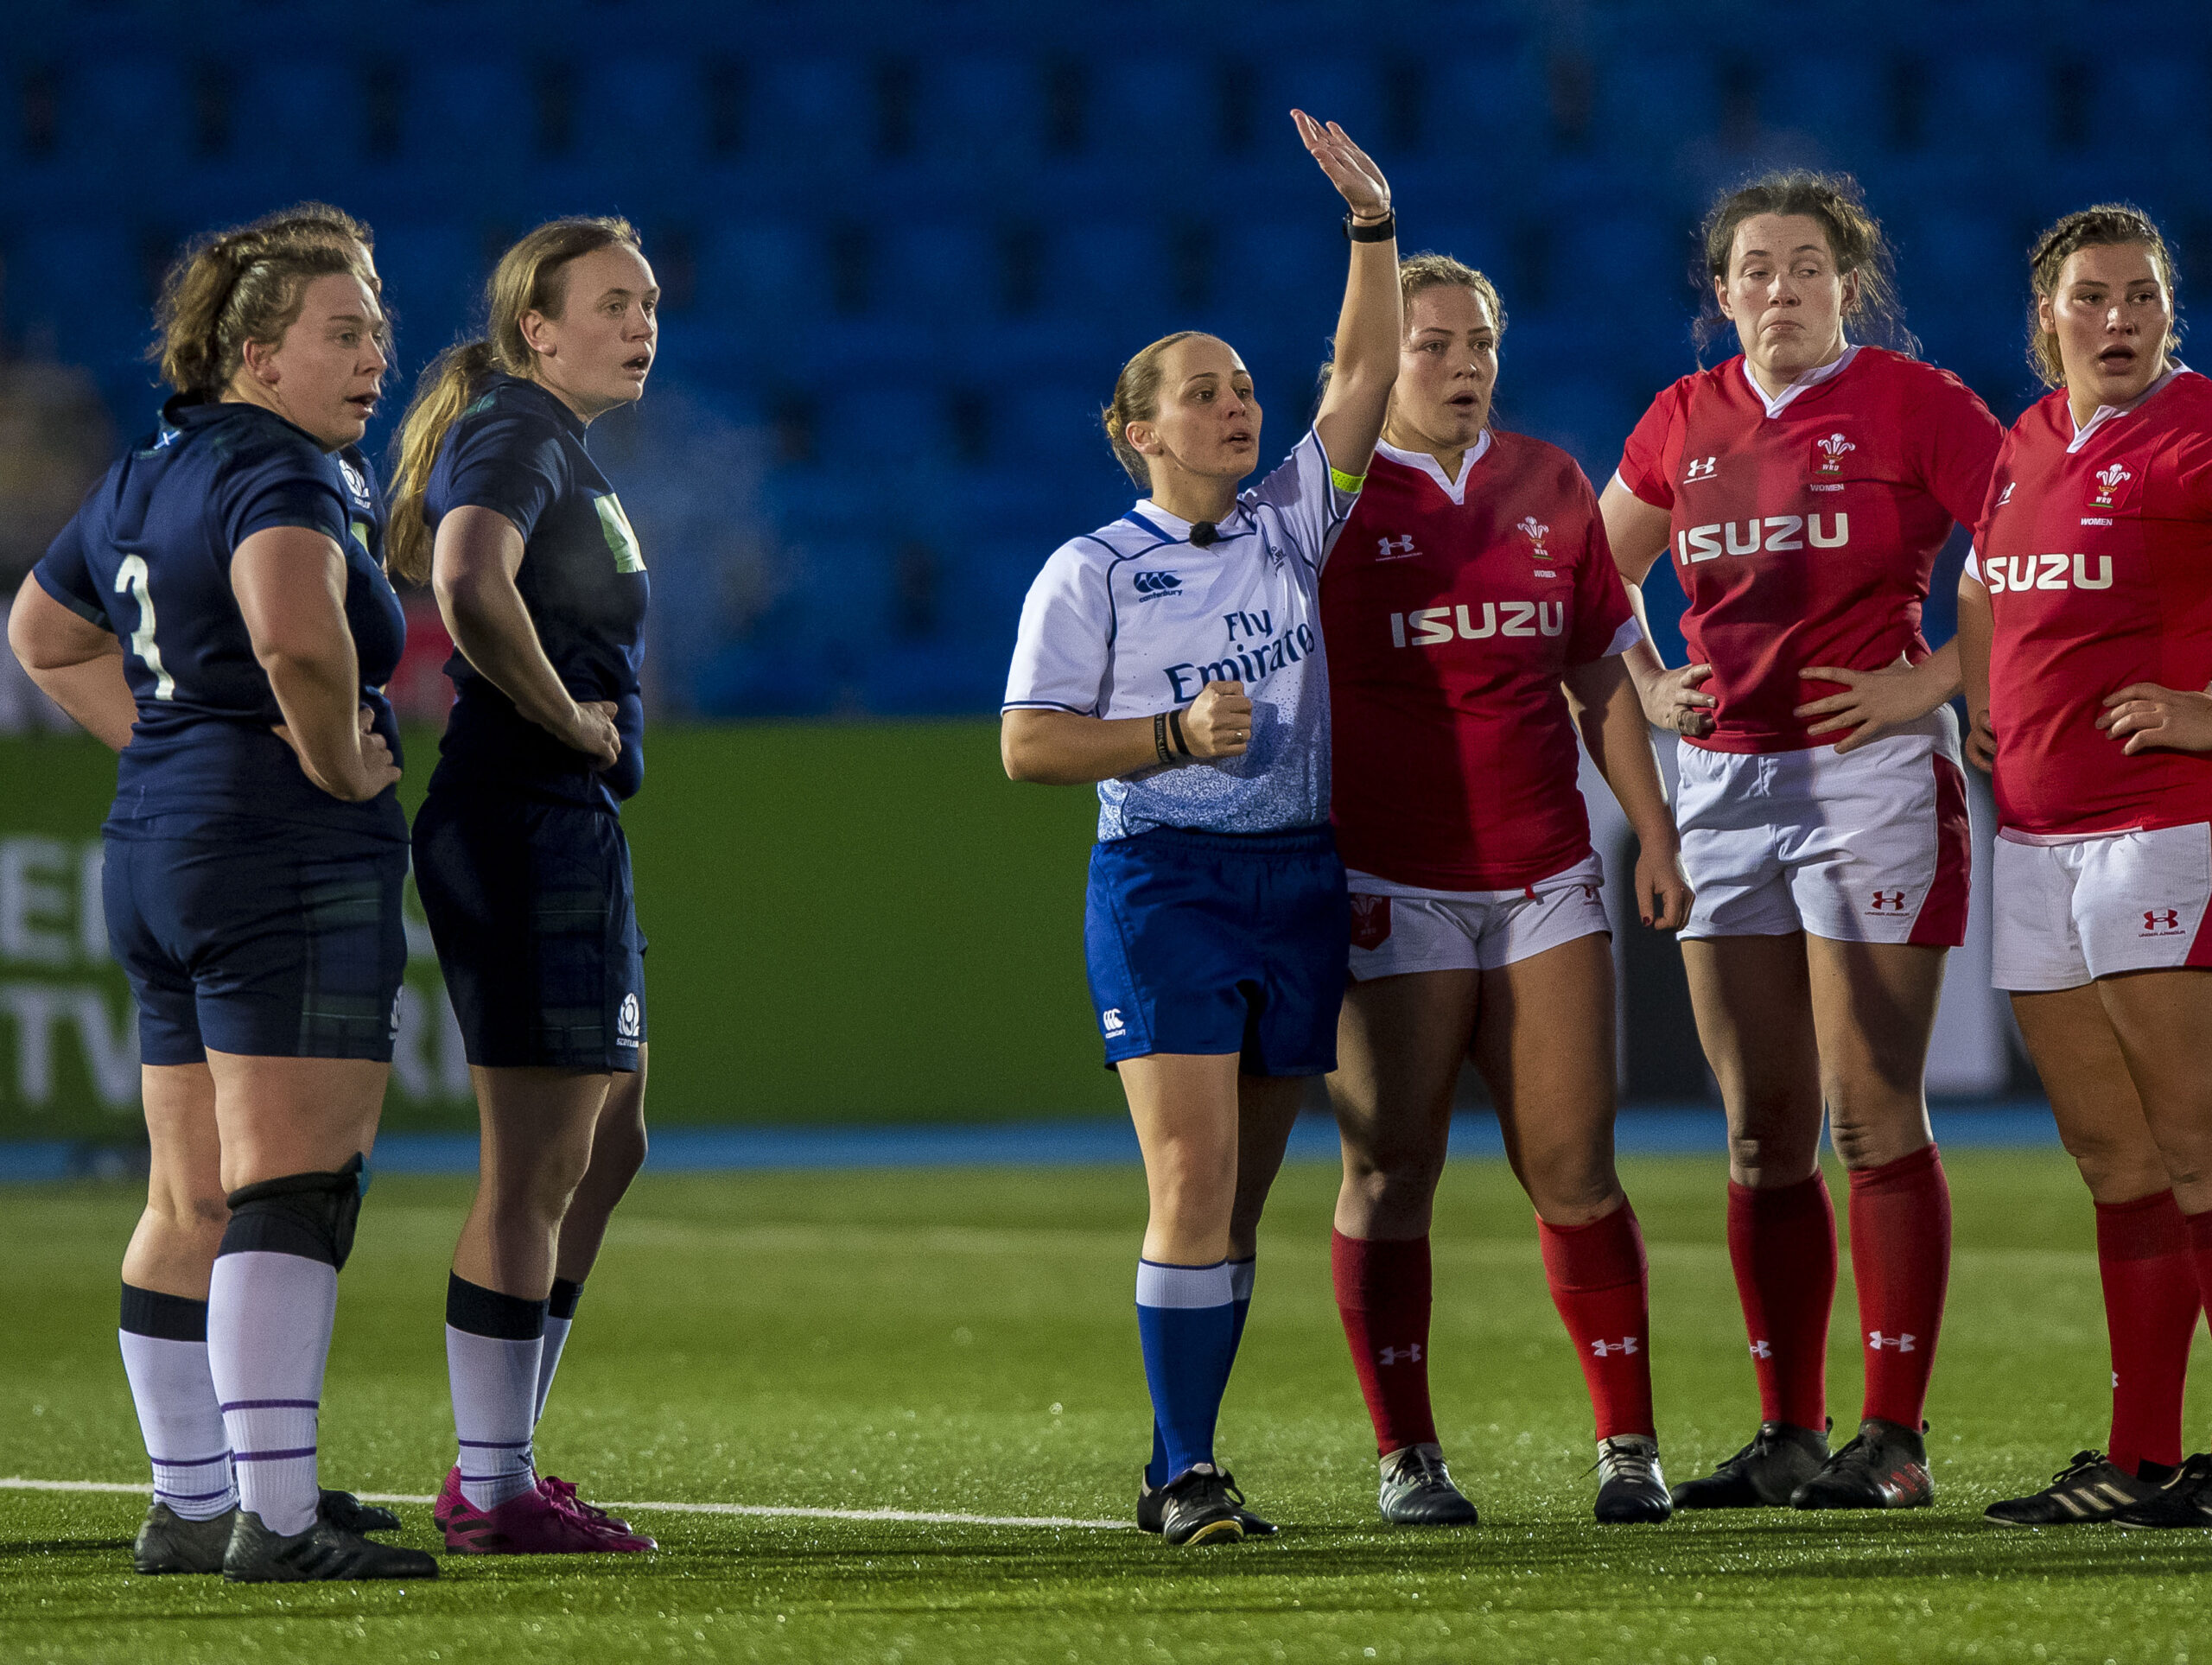 Captain Nikki O'Donnell continues international refereeing this Autumn